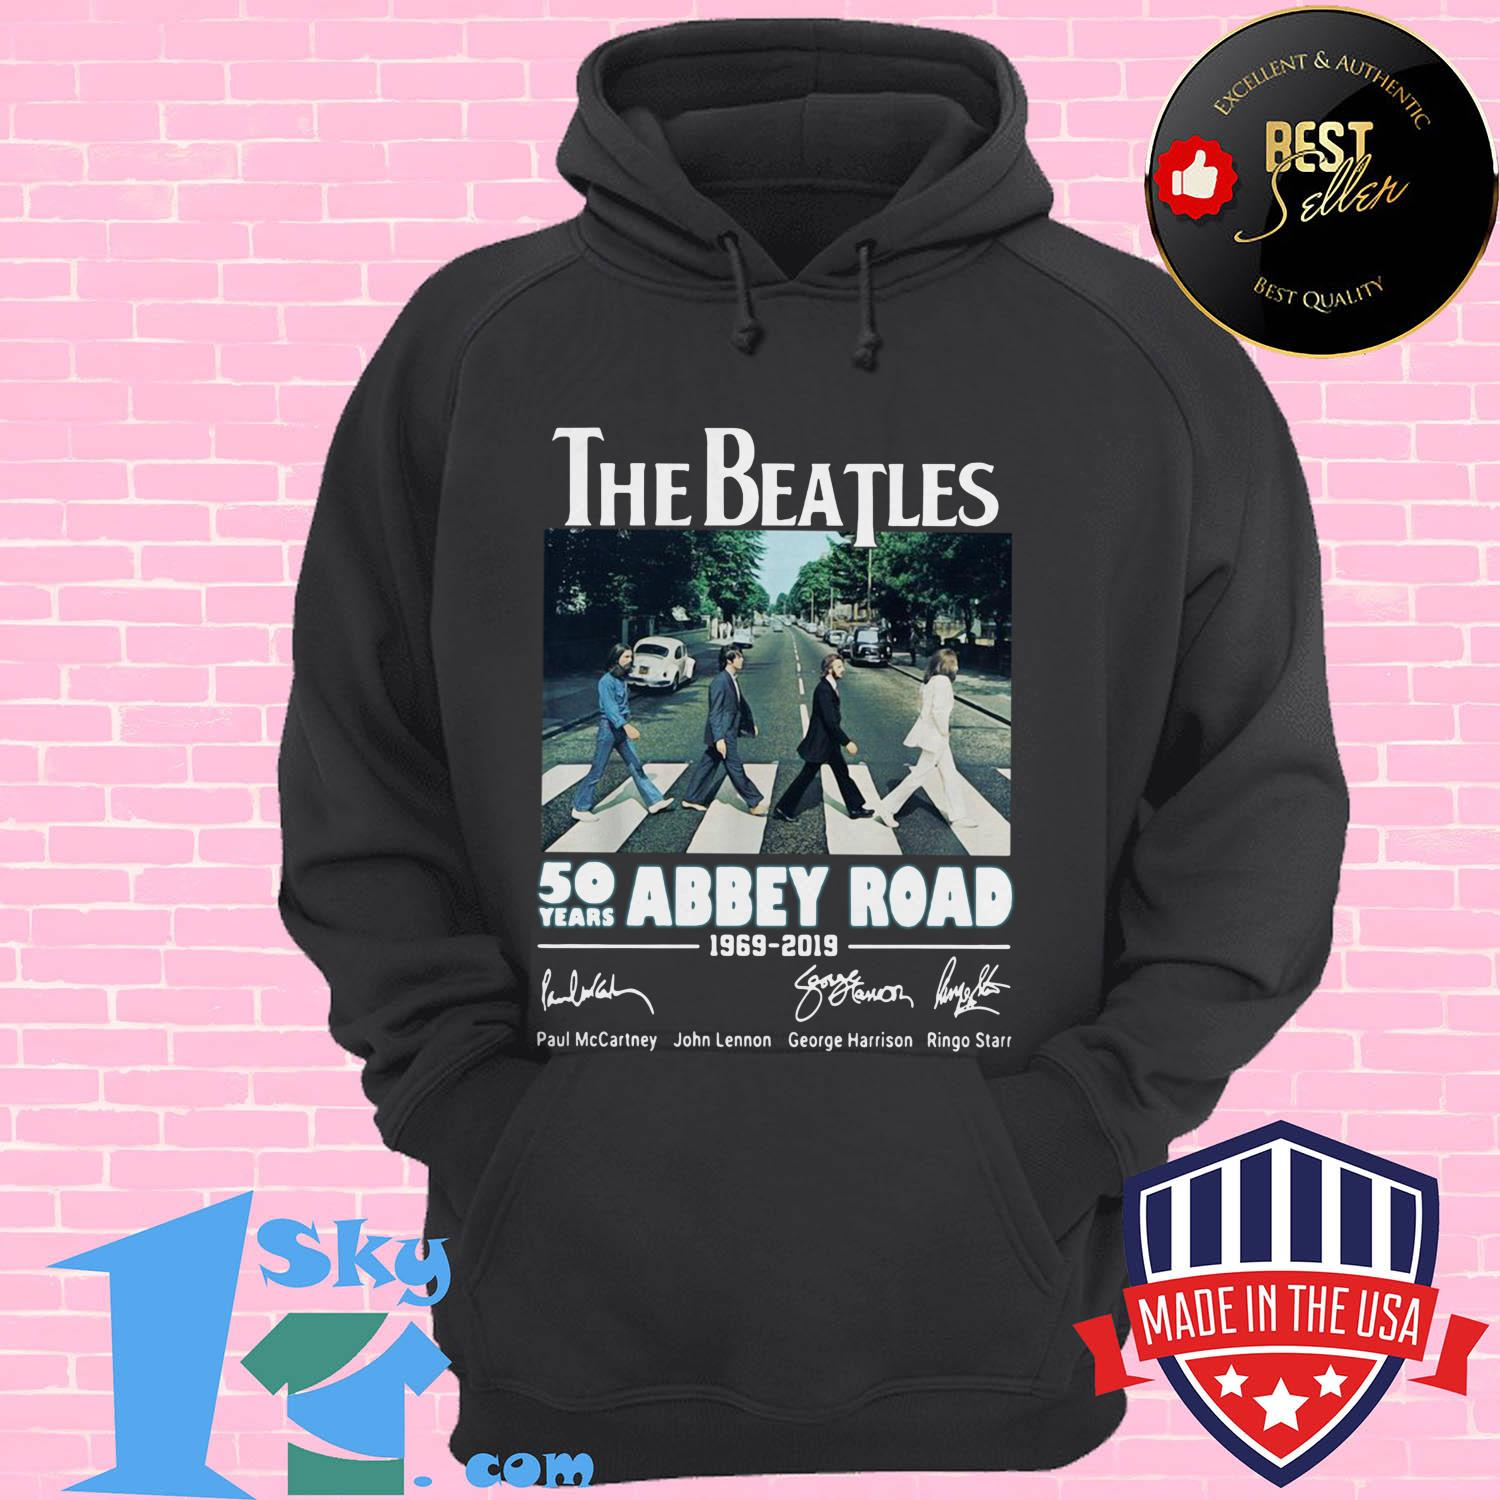 the beatles 50 years abbey road 1969 2019 signature hoodie - The Beatles 50 years Abbey Road 1969–2019 signature shirt